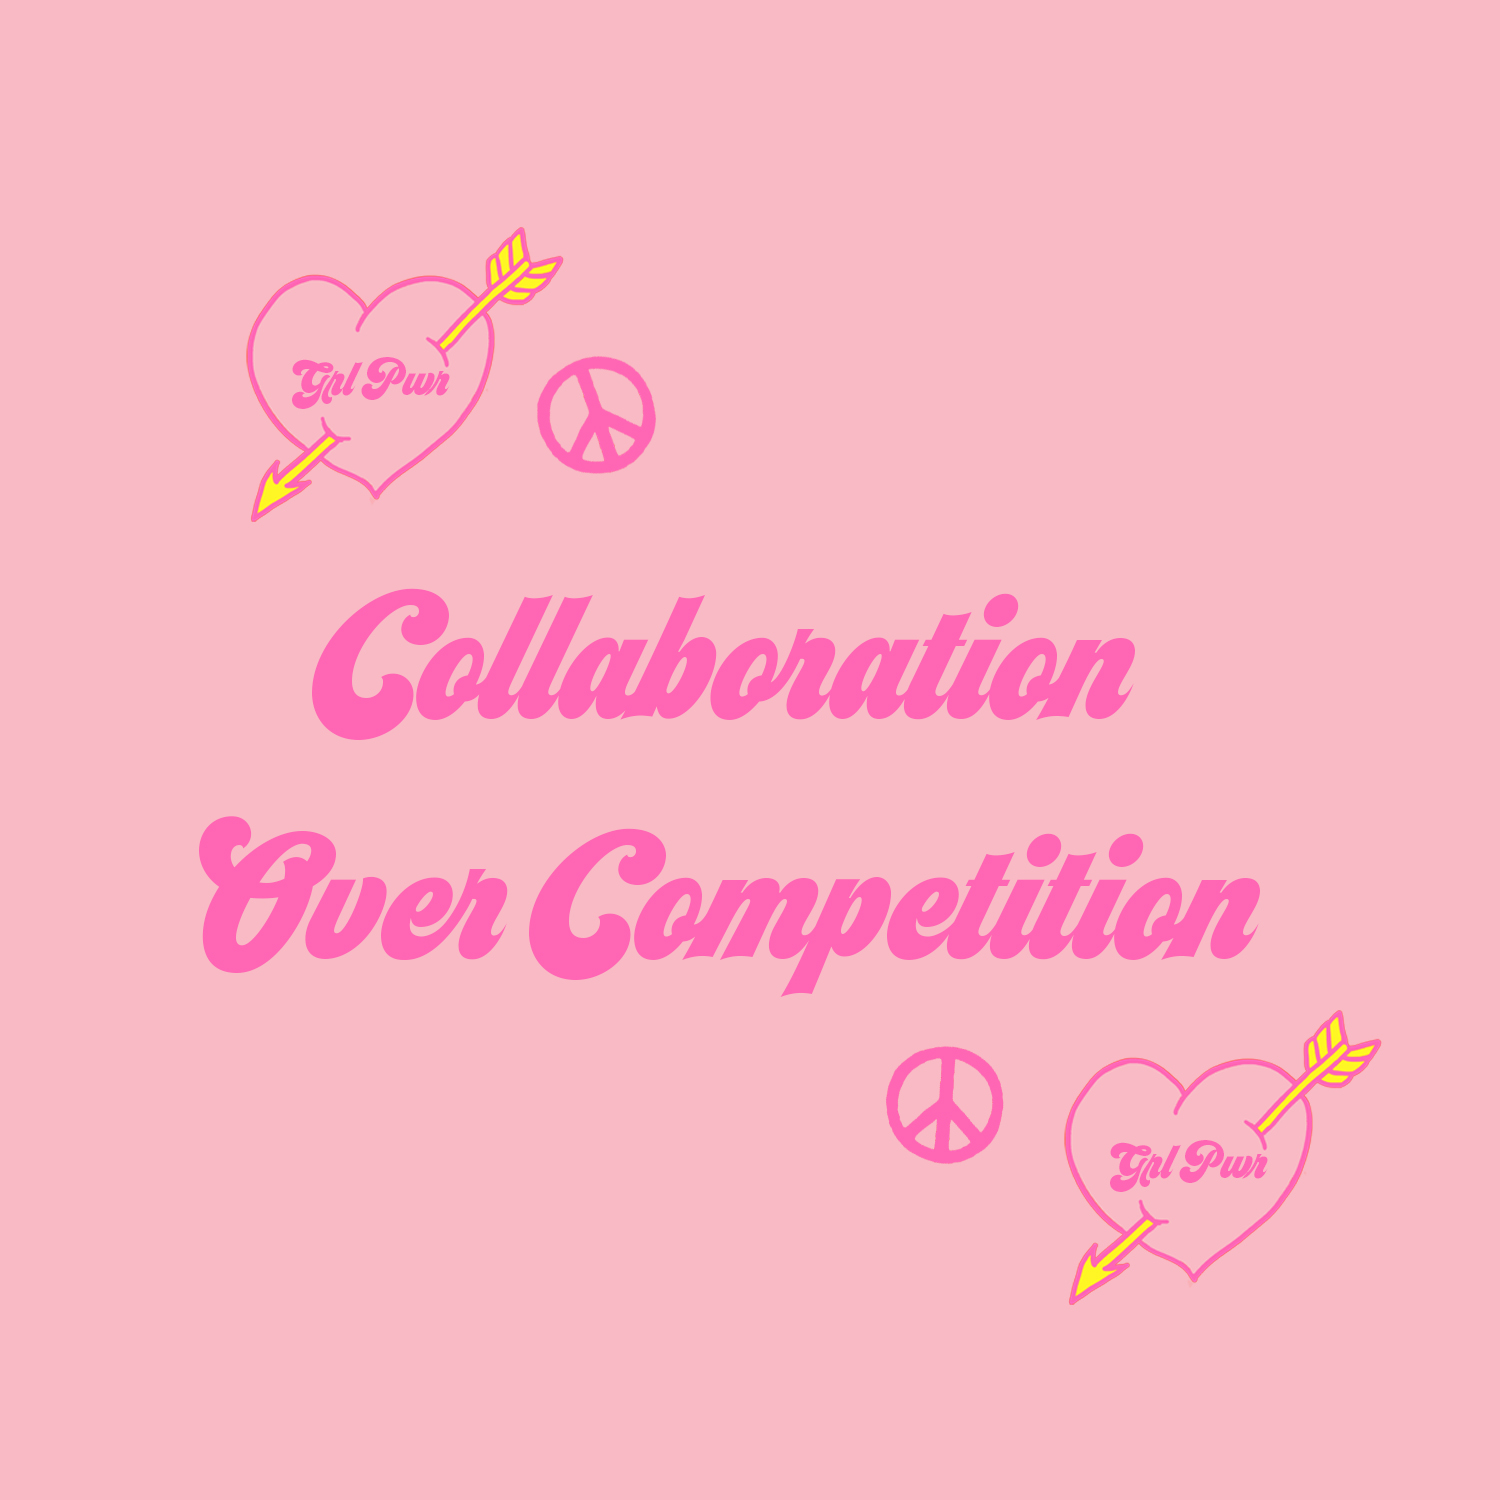 COLLABORATION OVER COMPETITION - A movement of females that see their peers as collaborators, not competitors